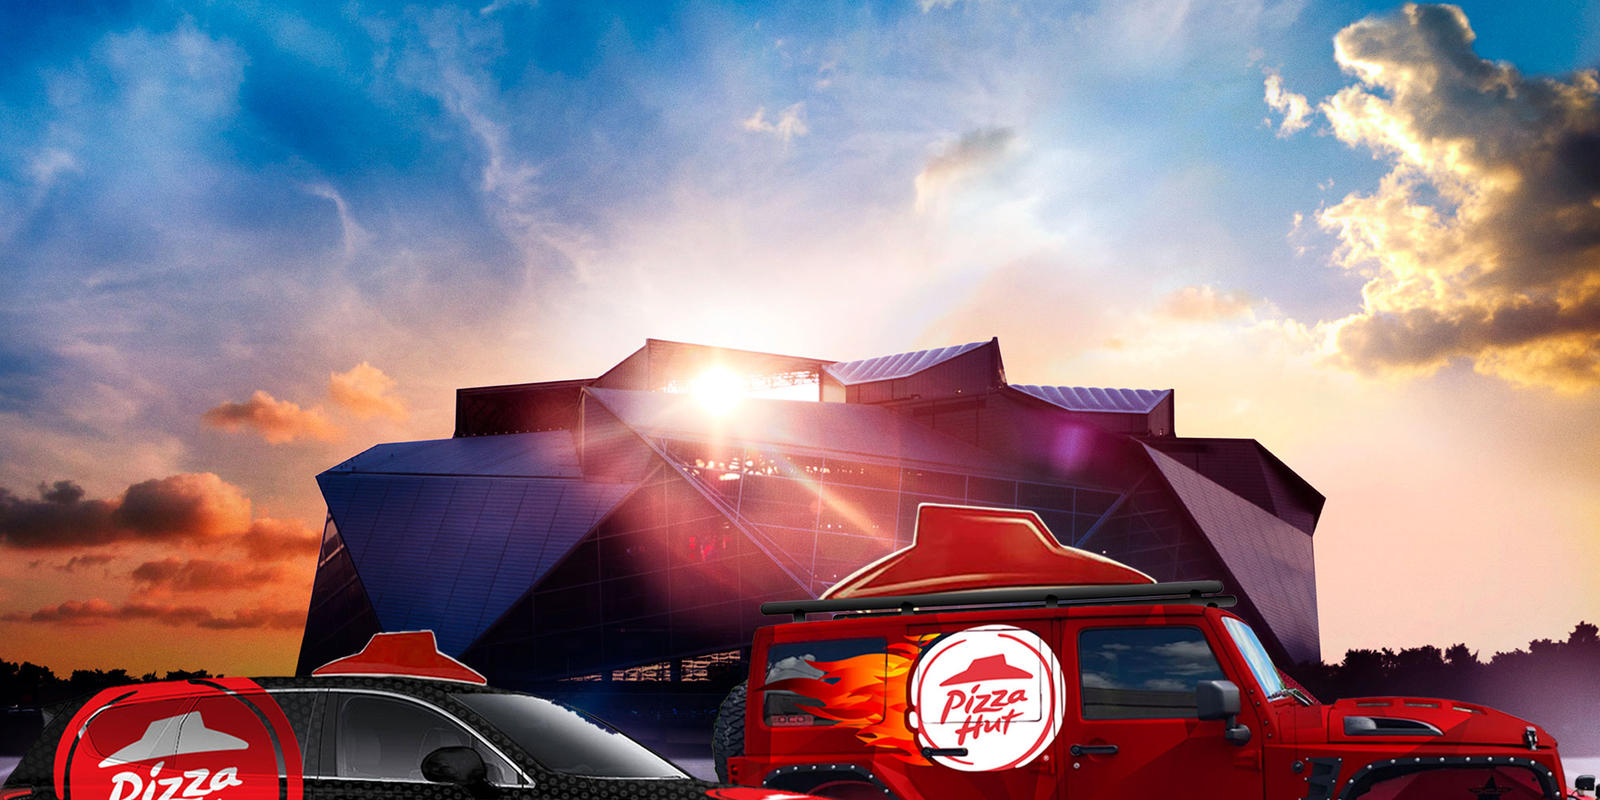 Pizza Hut Delivery Fleet at Atlanta Stadium